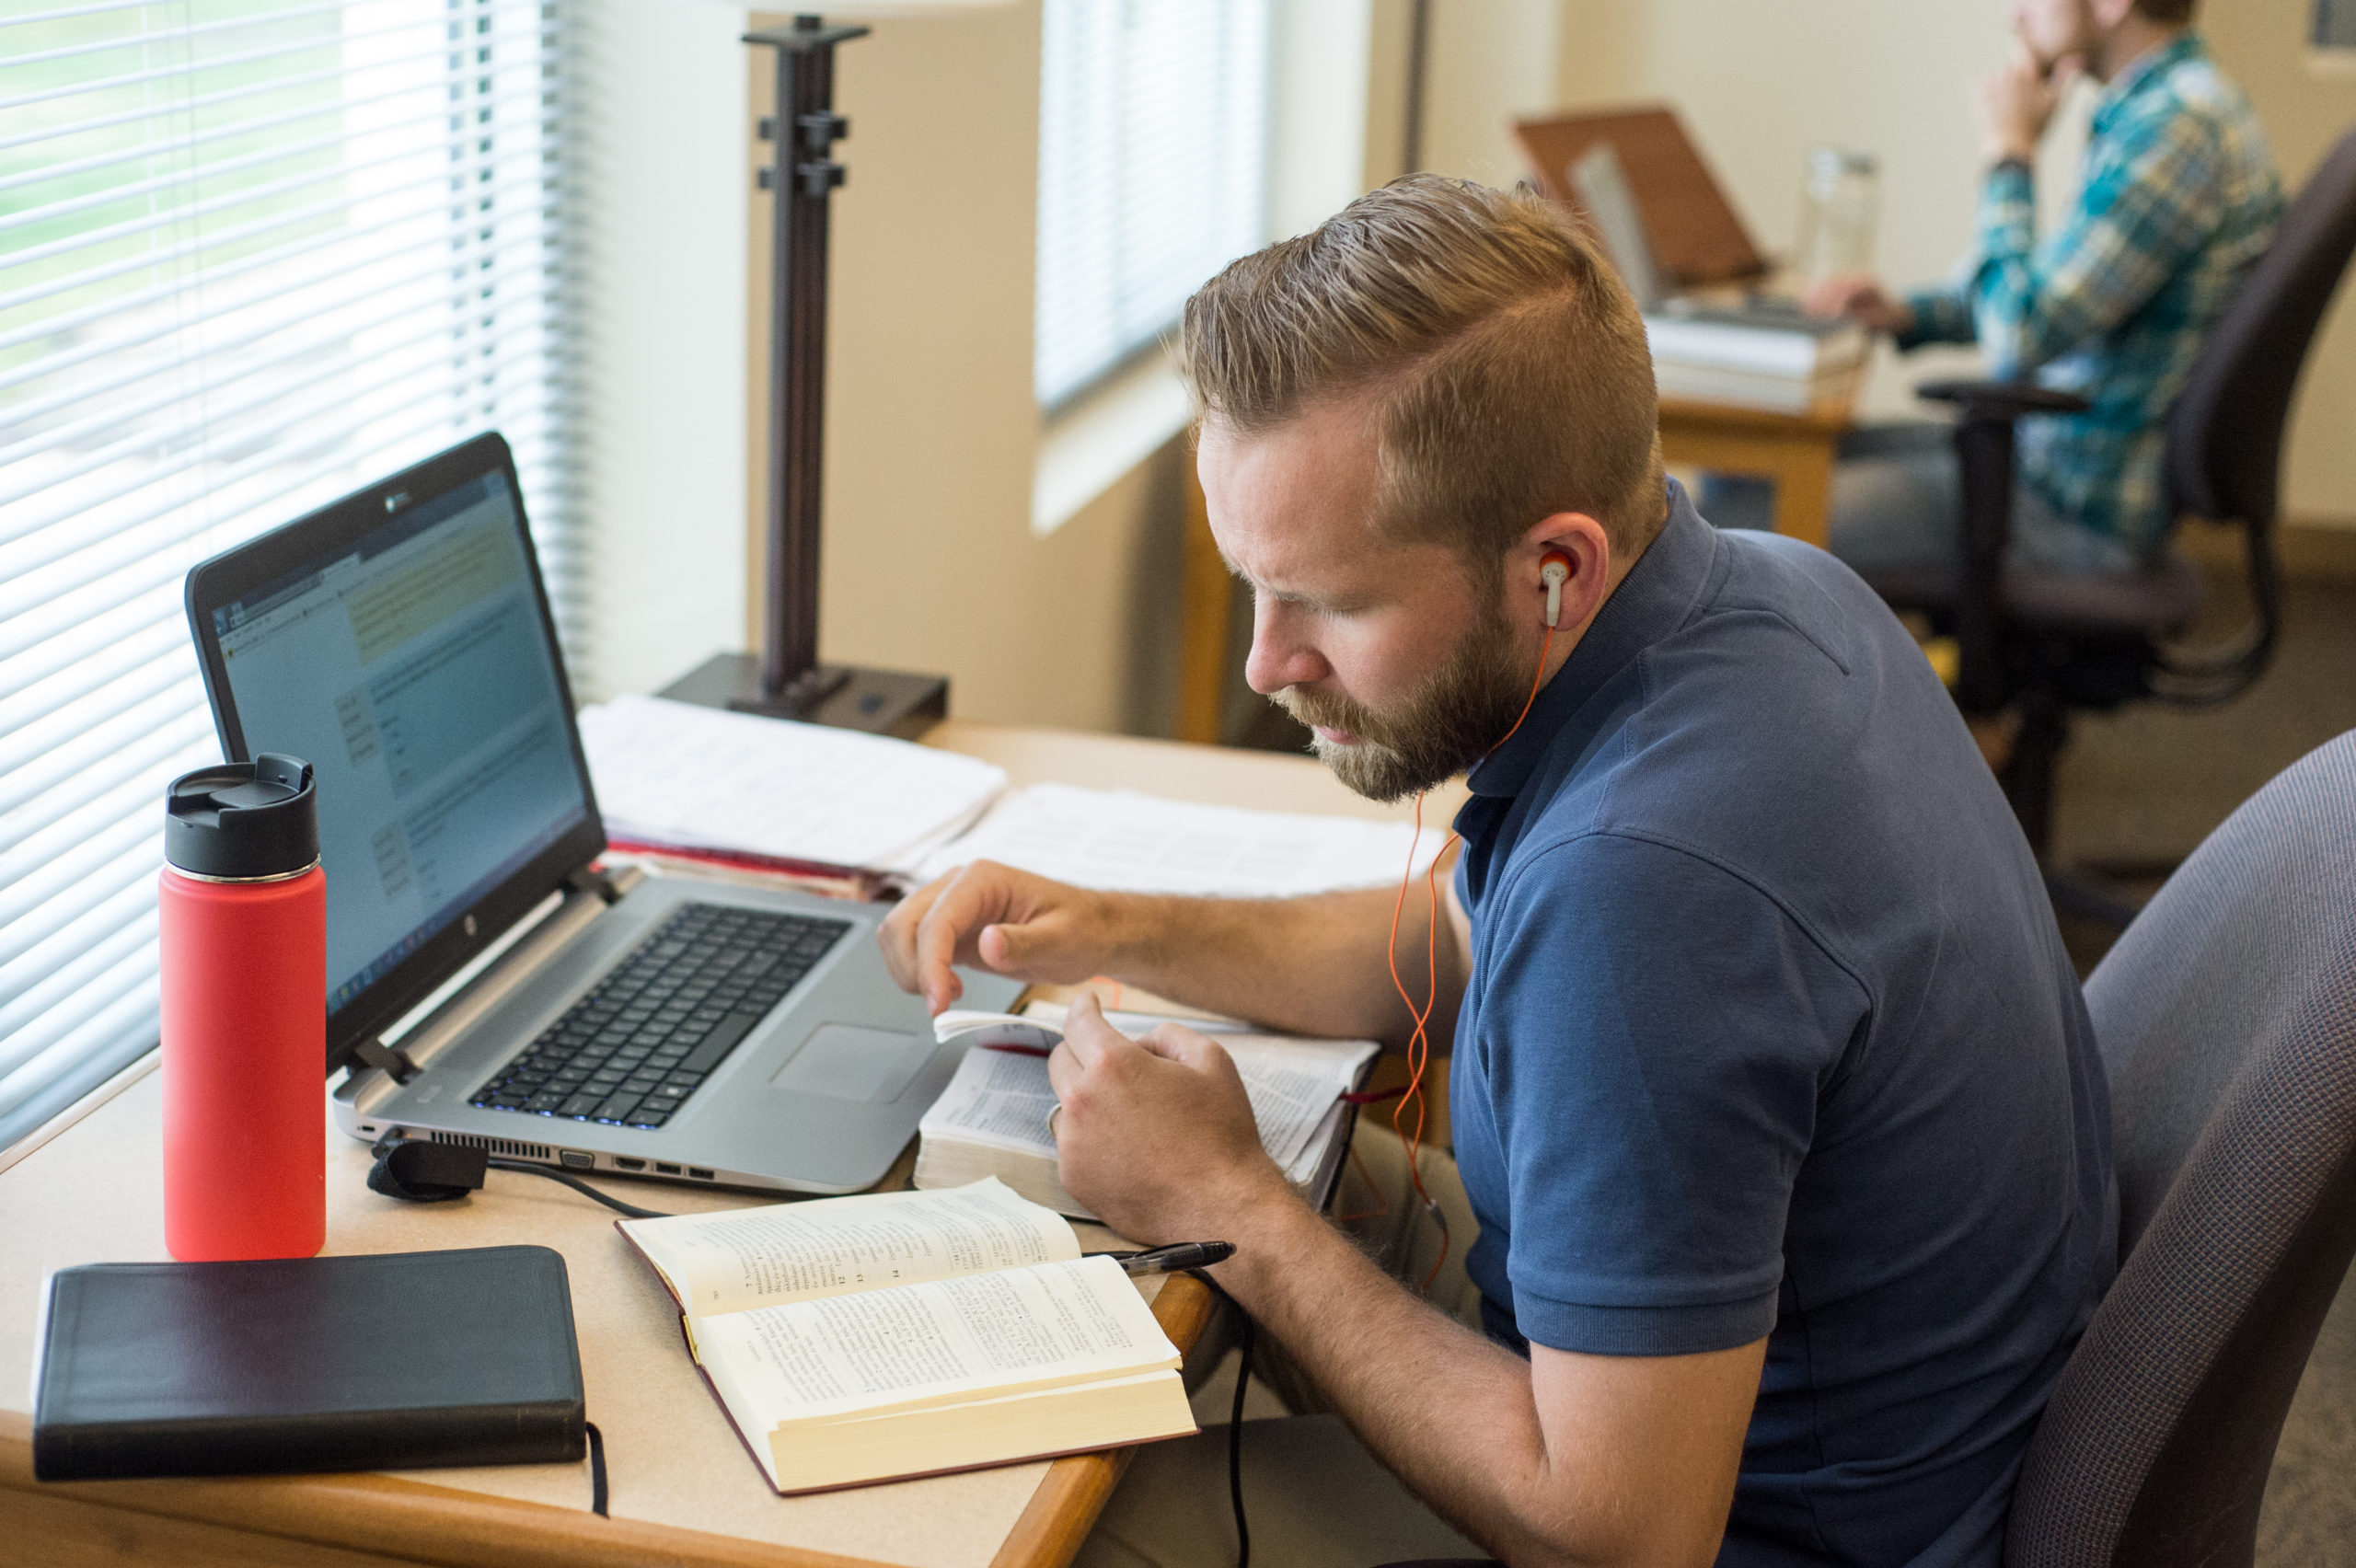 man with headphones in studying bible